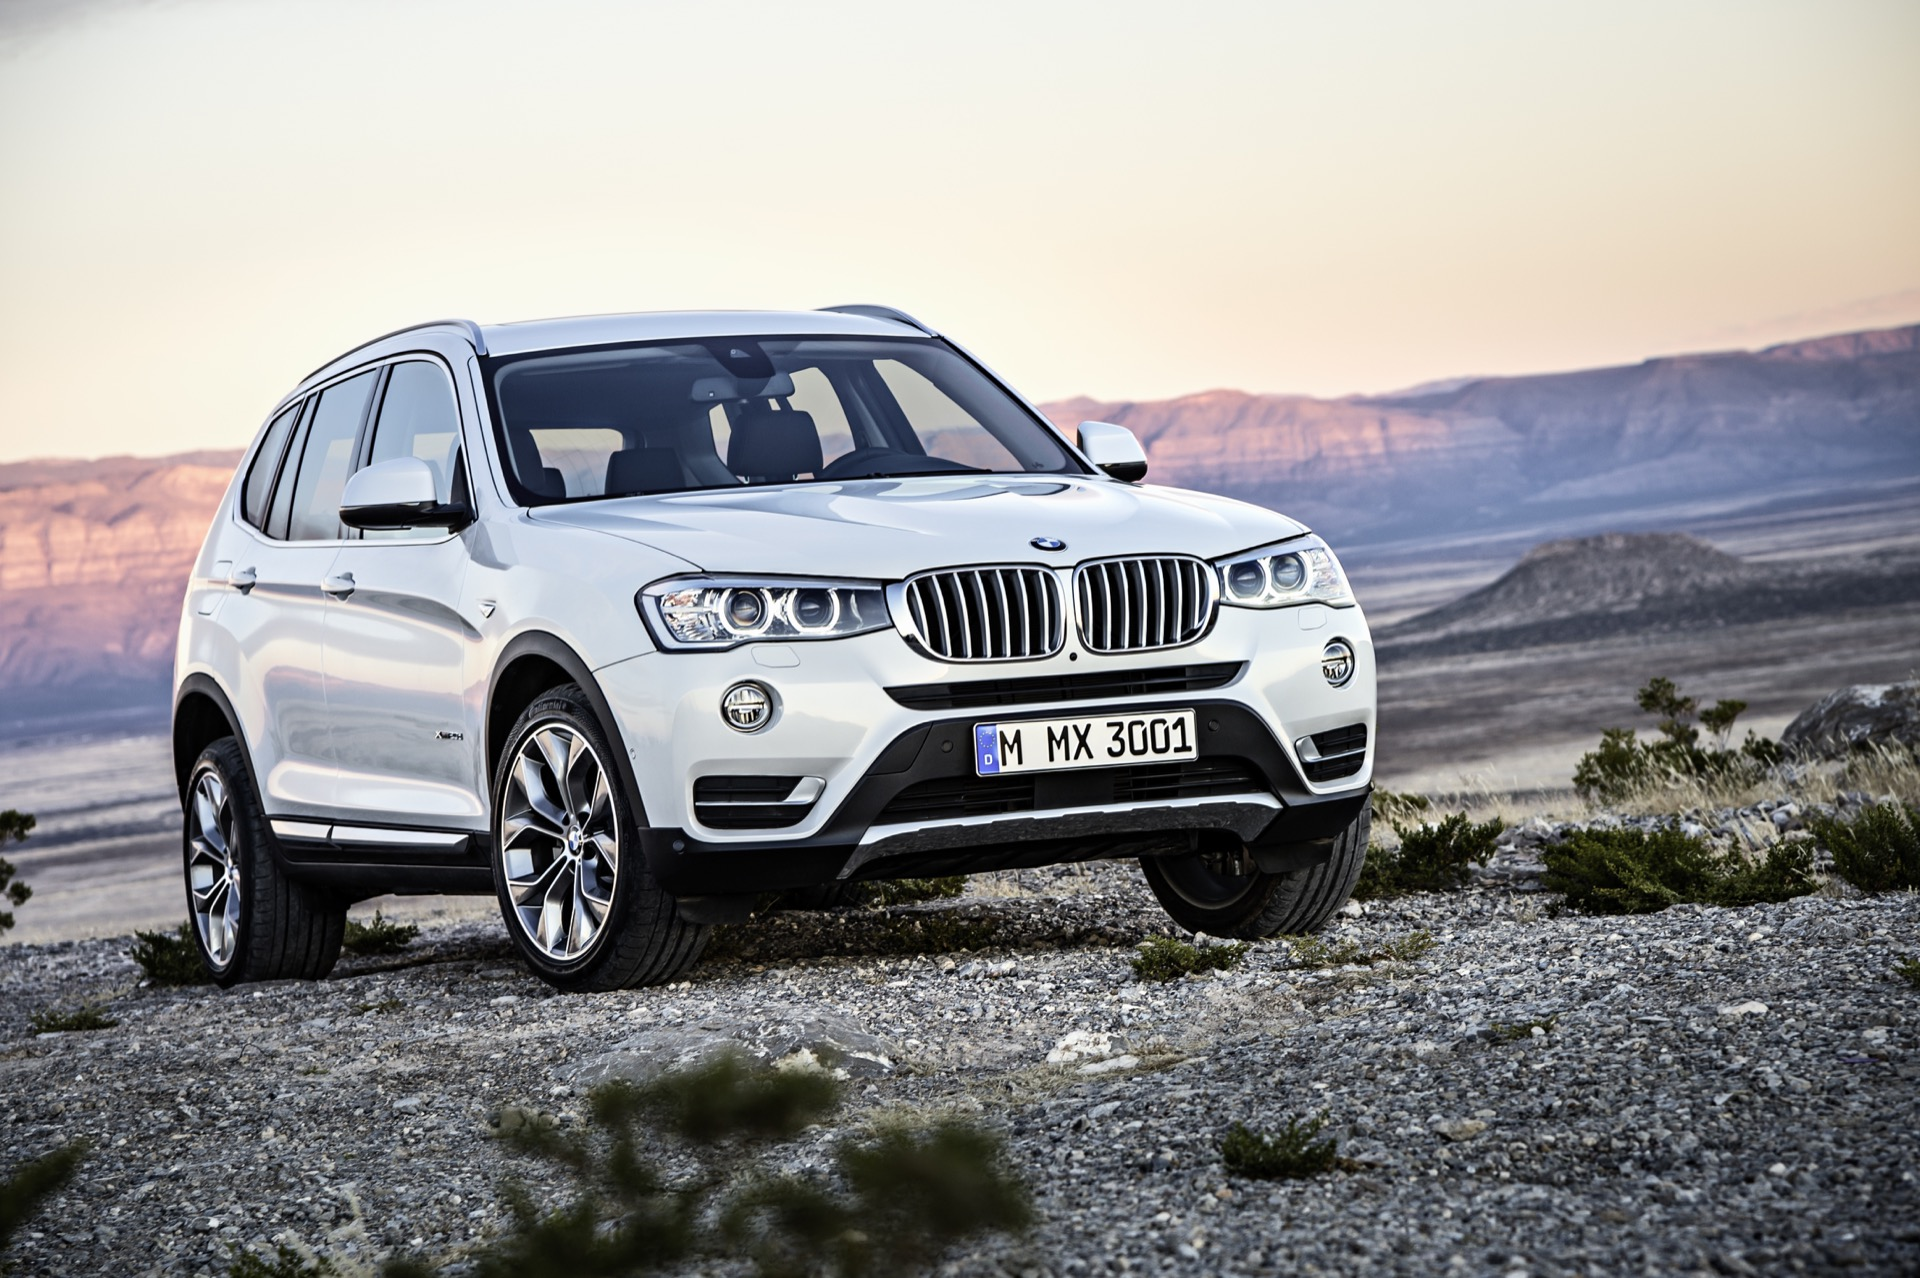 BMW X3 X4 X5 X6 recalled over 210 000 vehicles affected